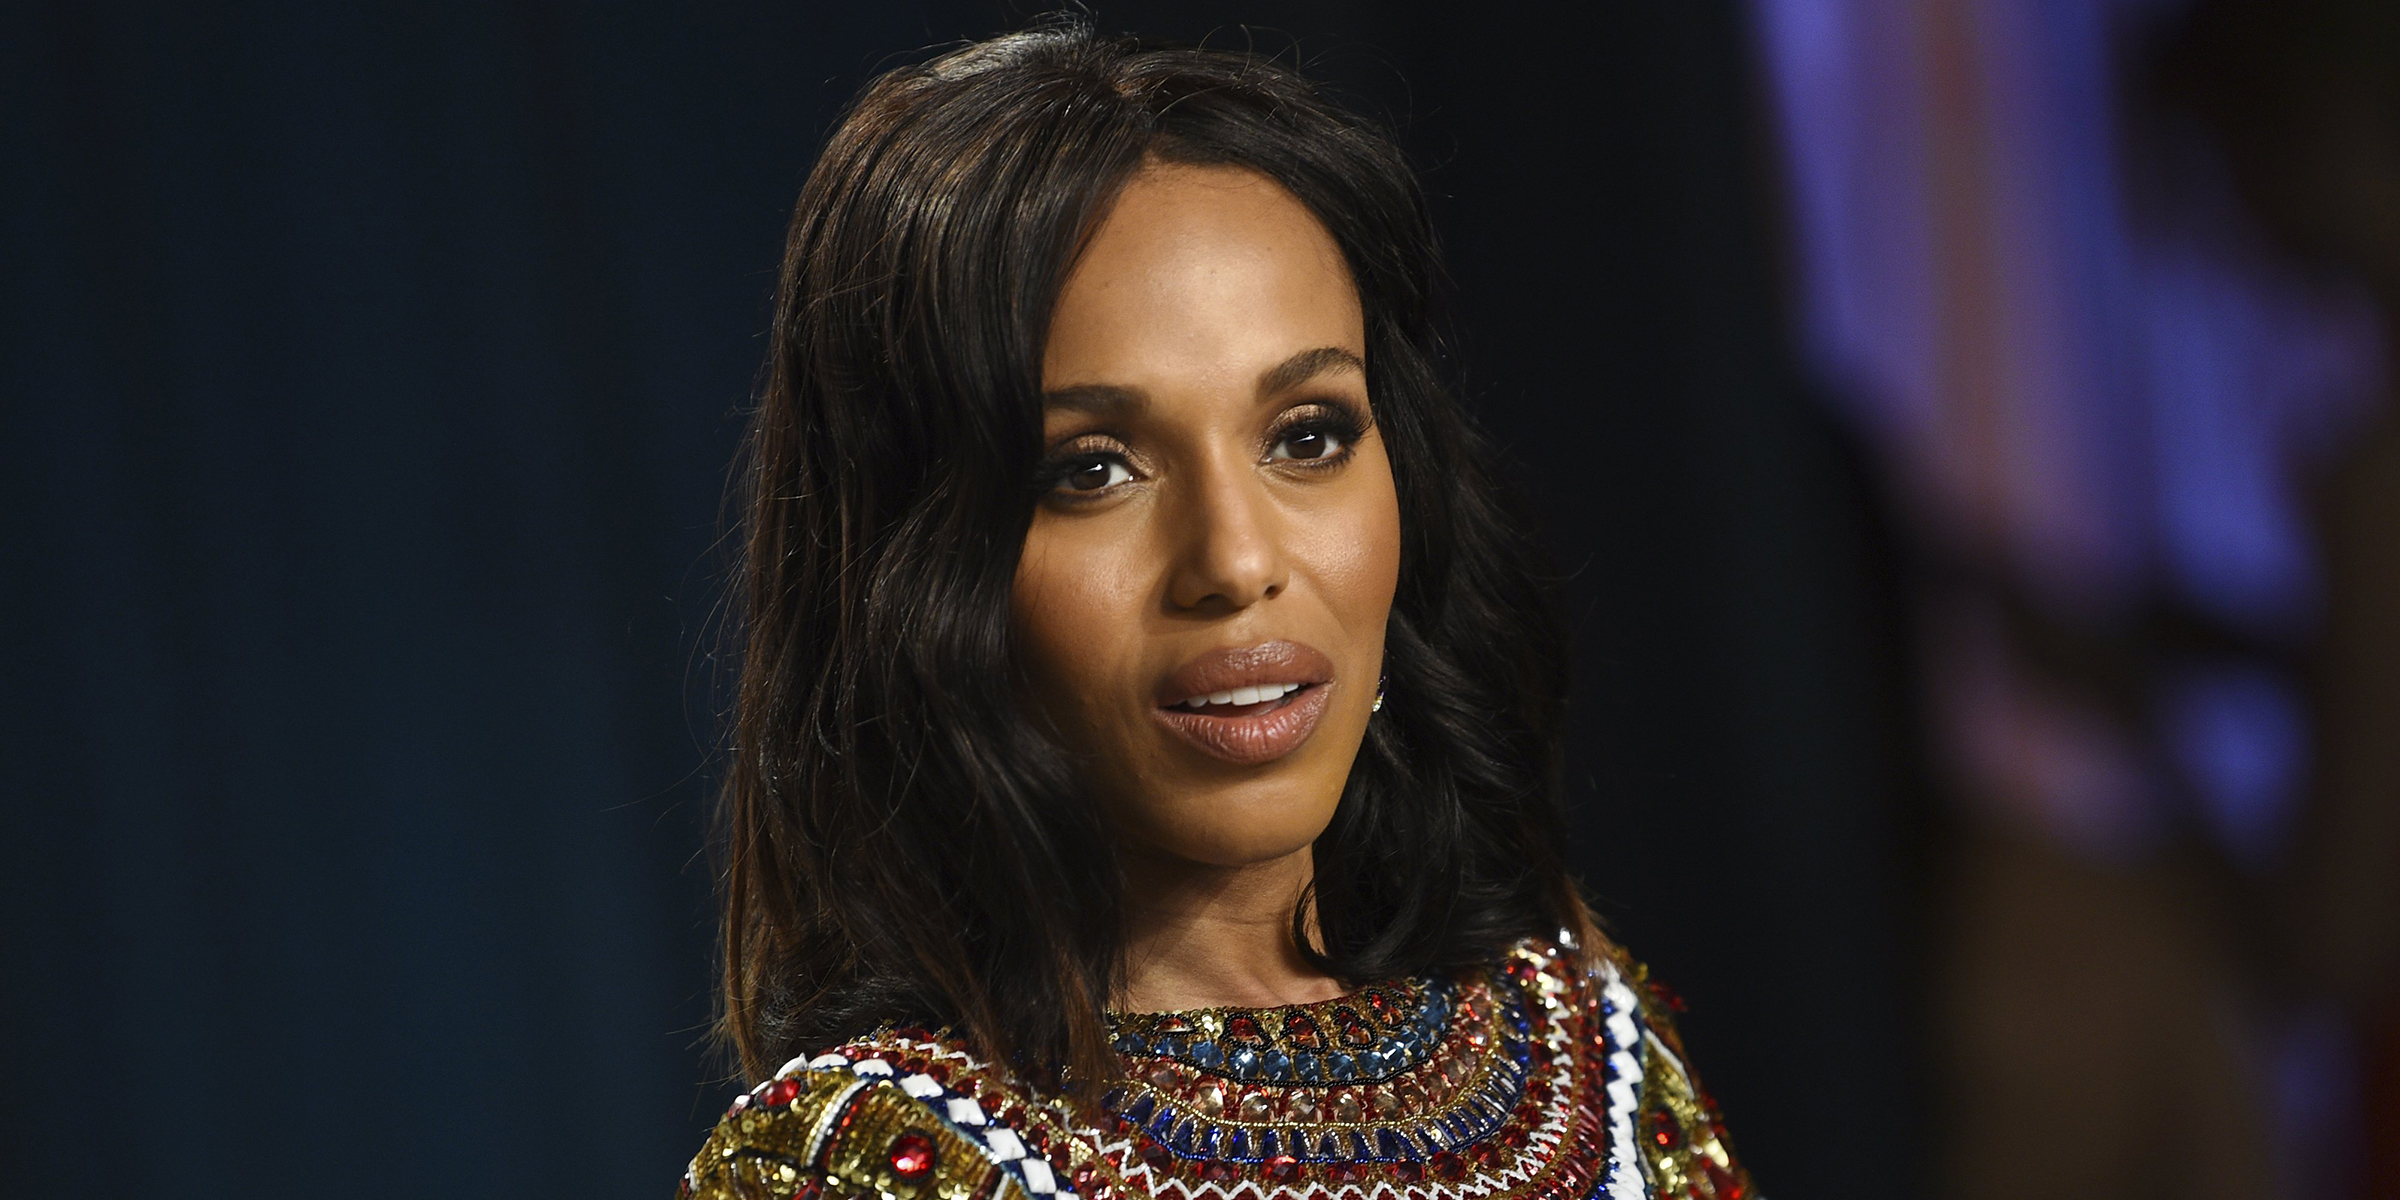 Kerry Washington arrives at the Vanity Fair Oscar Party on Sunday, Feb. 9, 2020, in Beverly Hills, Calif. (Photo by Evan Agostini/Invision/AP)